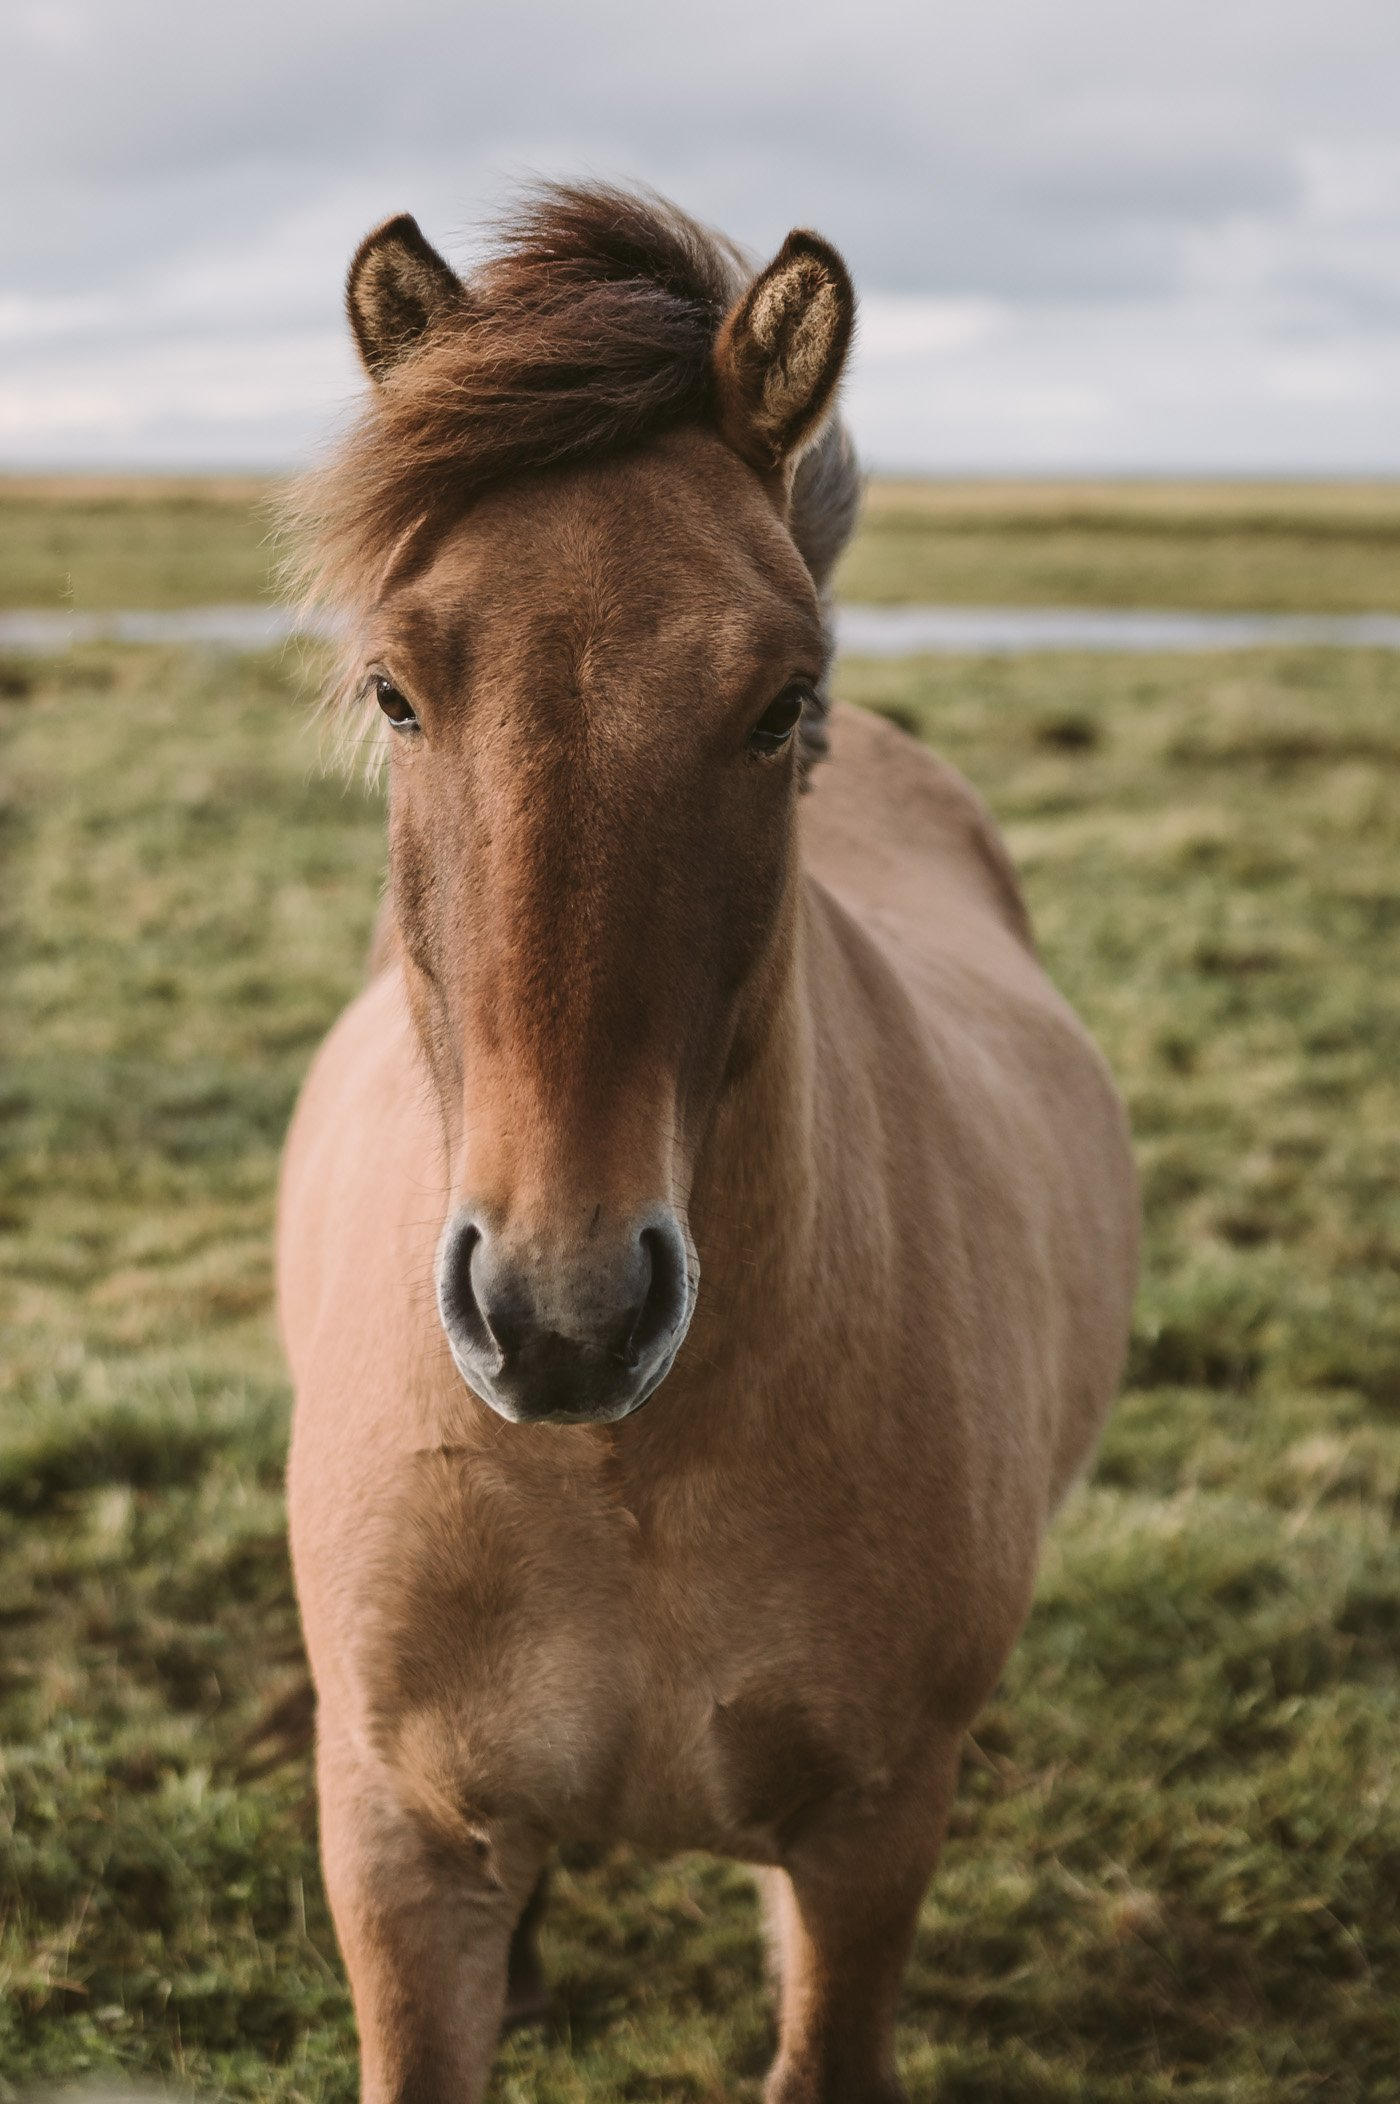 Horses at Hotel Eldhestar in Iceland